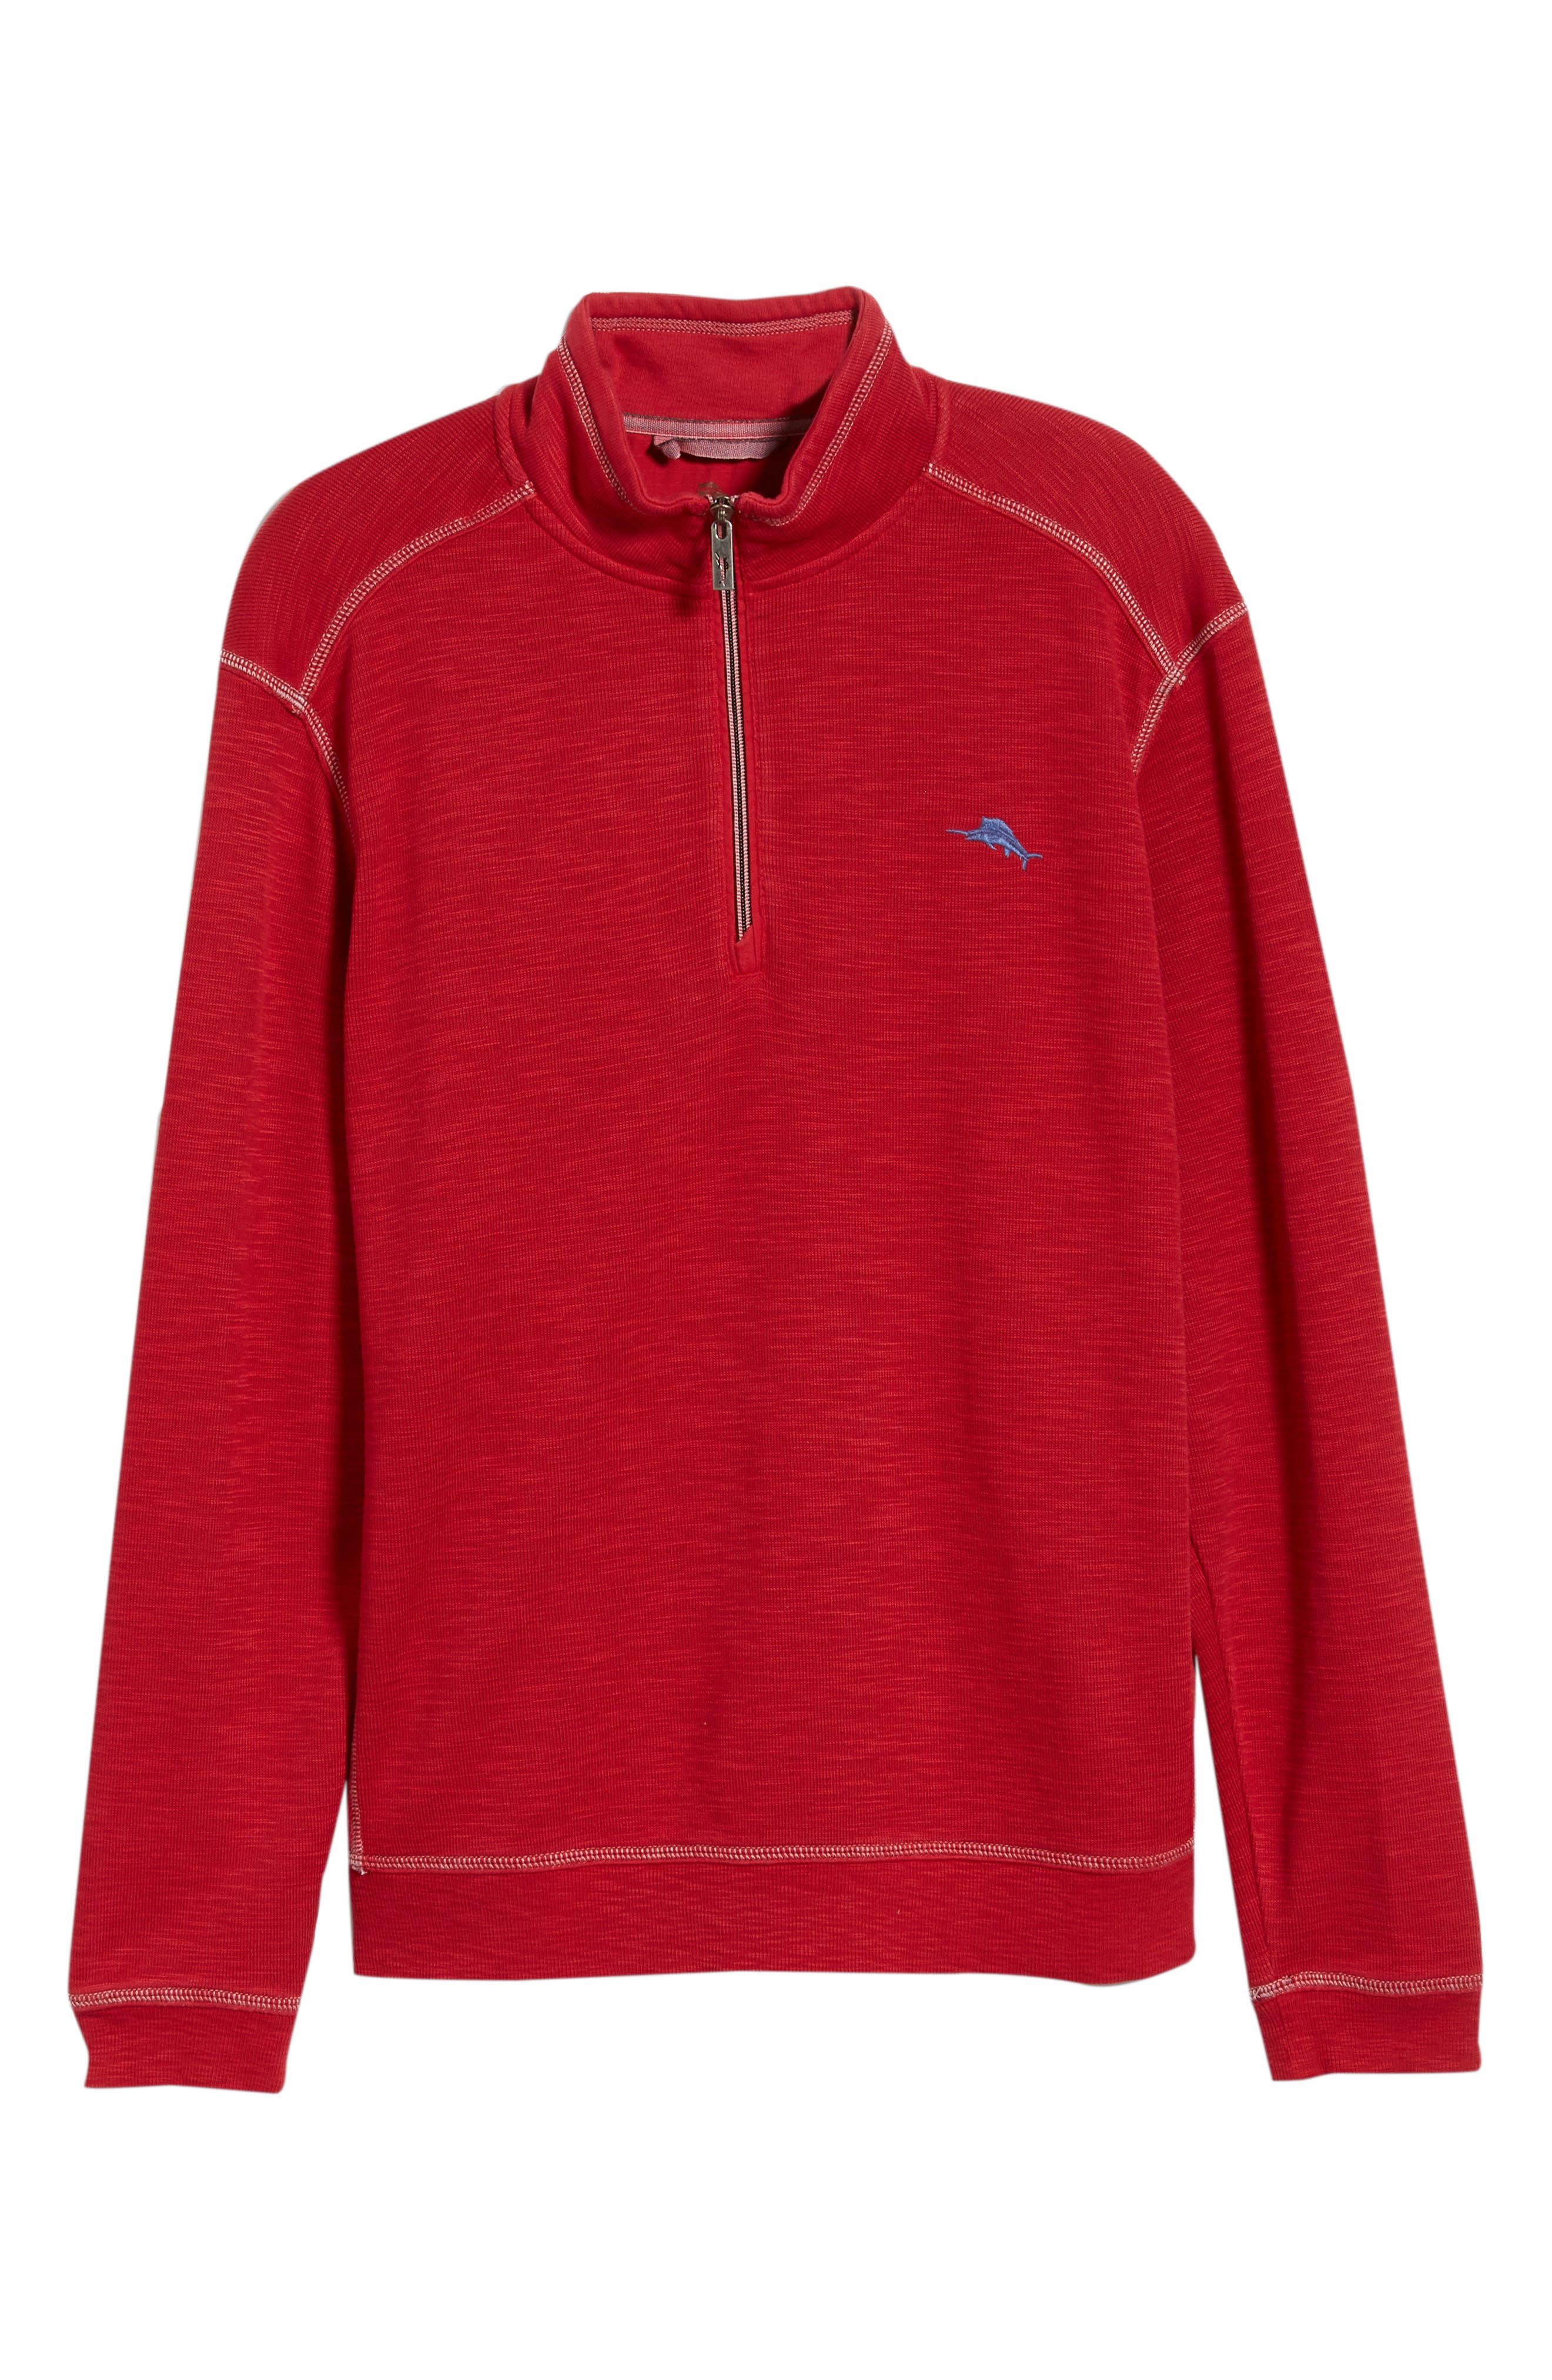 Tobago Bay Half Zip Pullover,                             Alternate thumbnail 6, color,                             SCOOTER RED